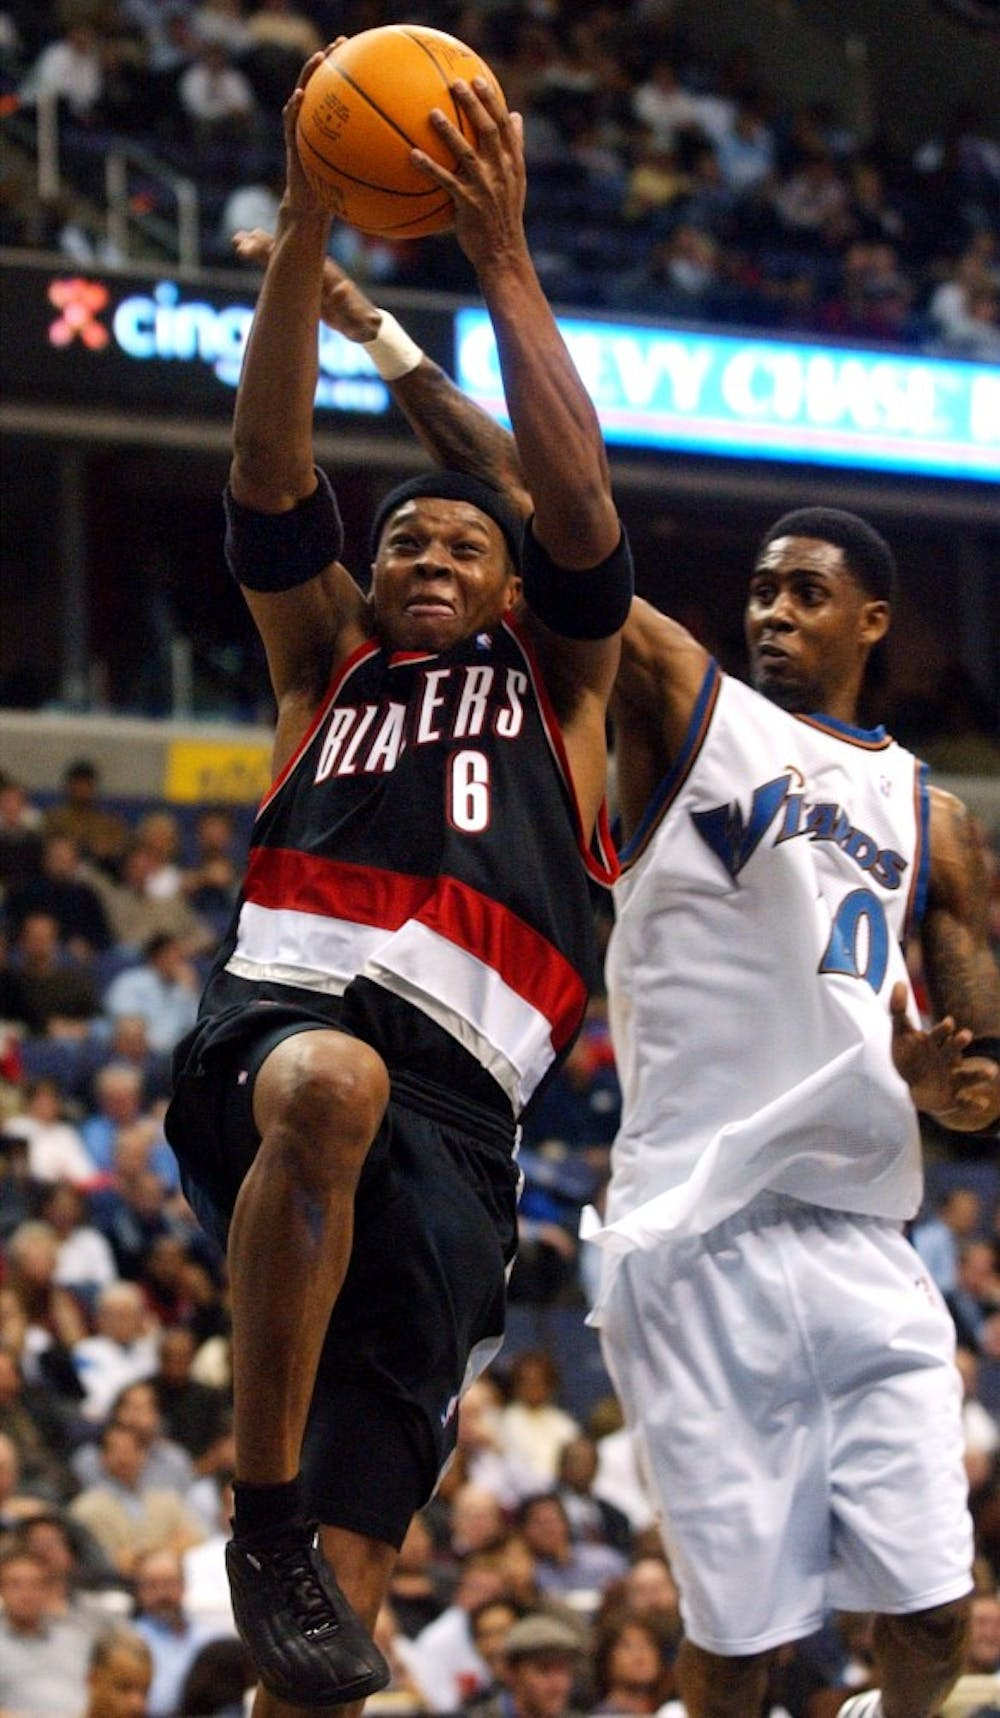 Bonzi Wells: From Muncie Central High School, Ball State to the NBA